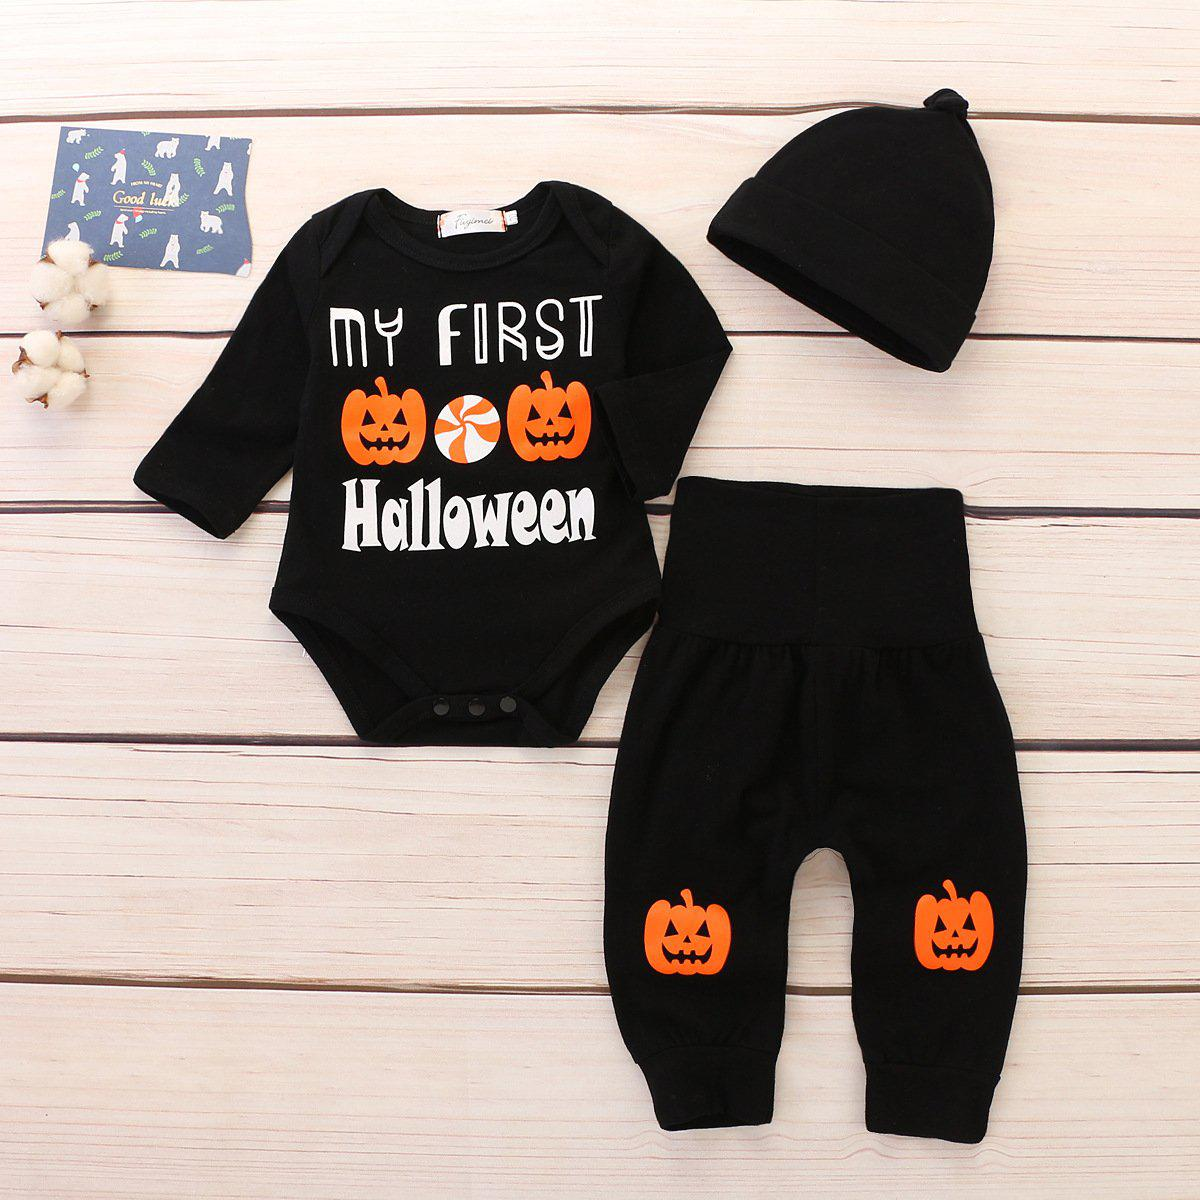 My First Halloween Festival Baby Set